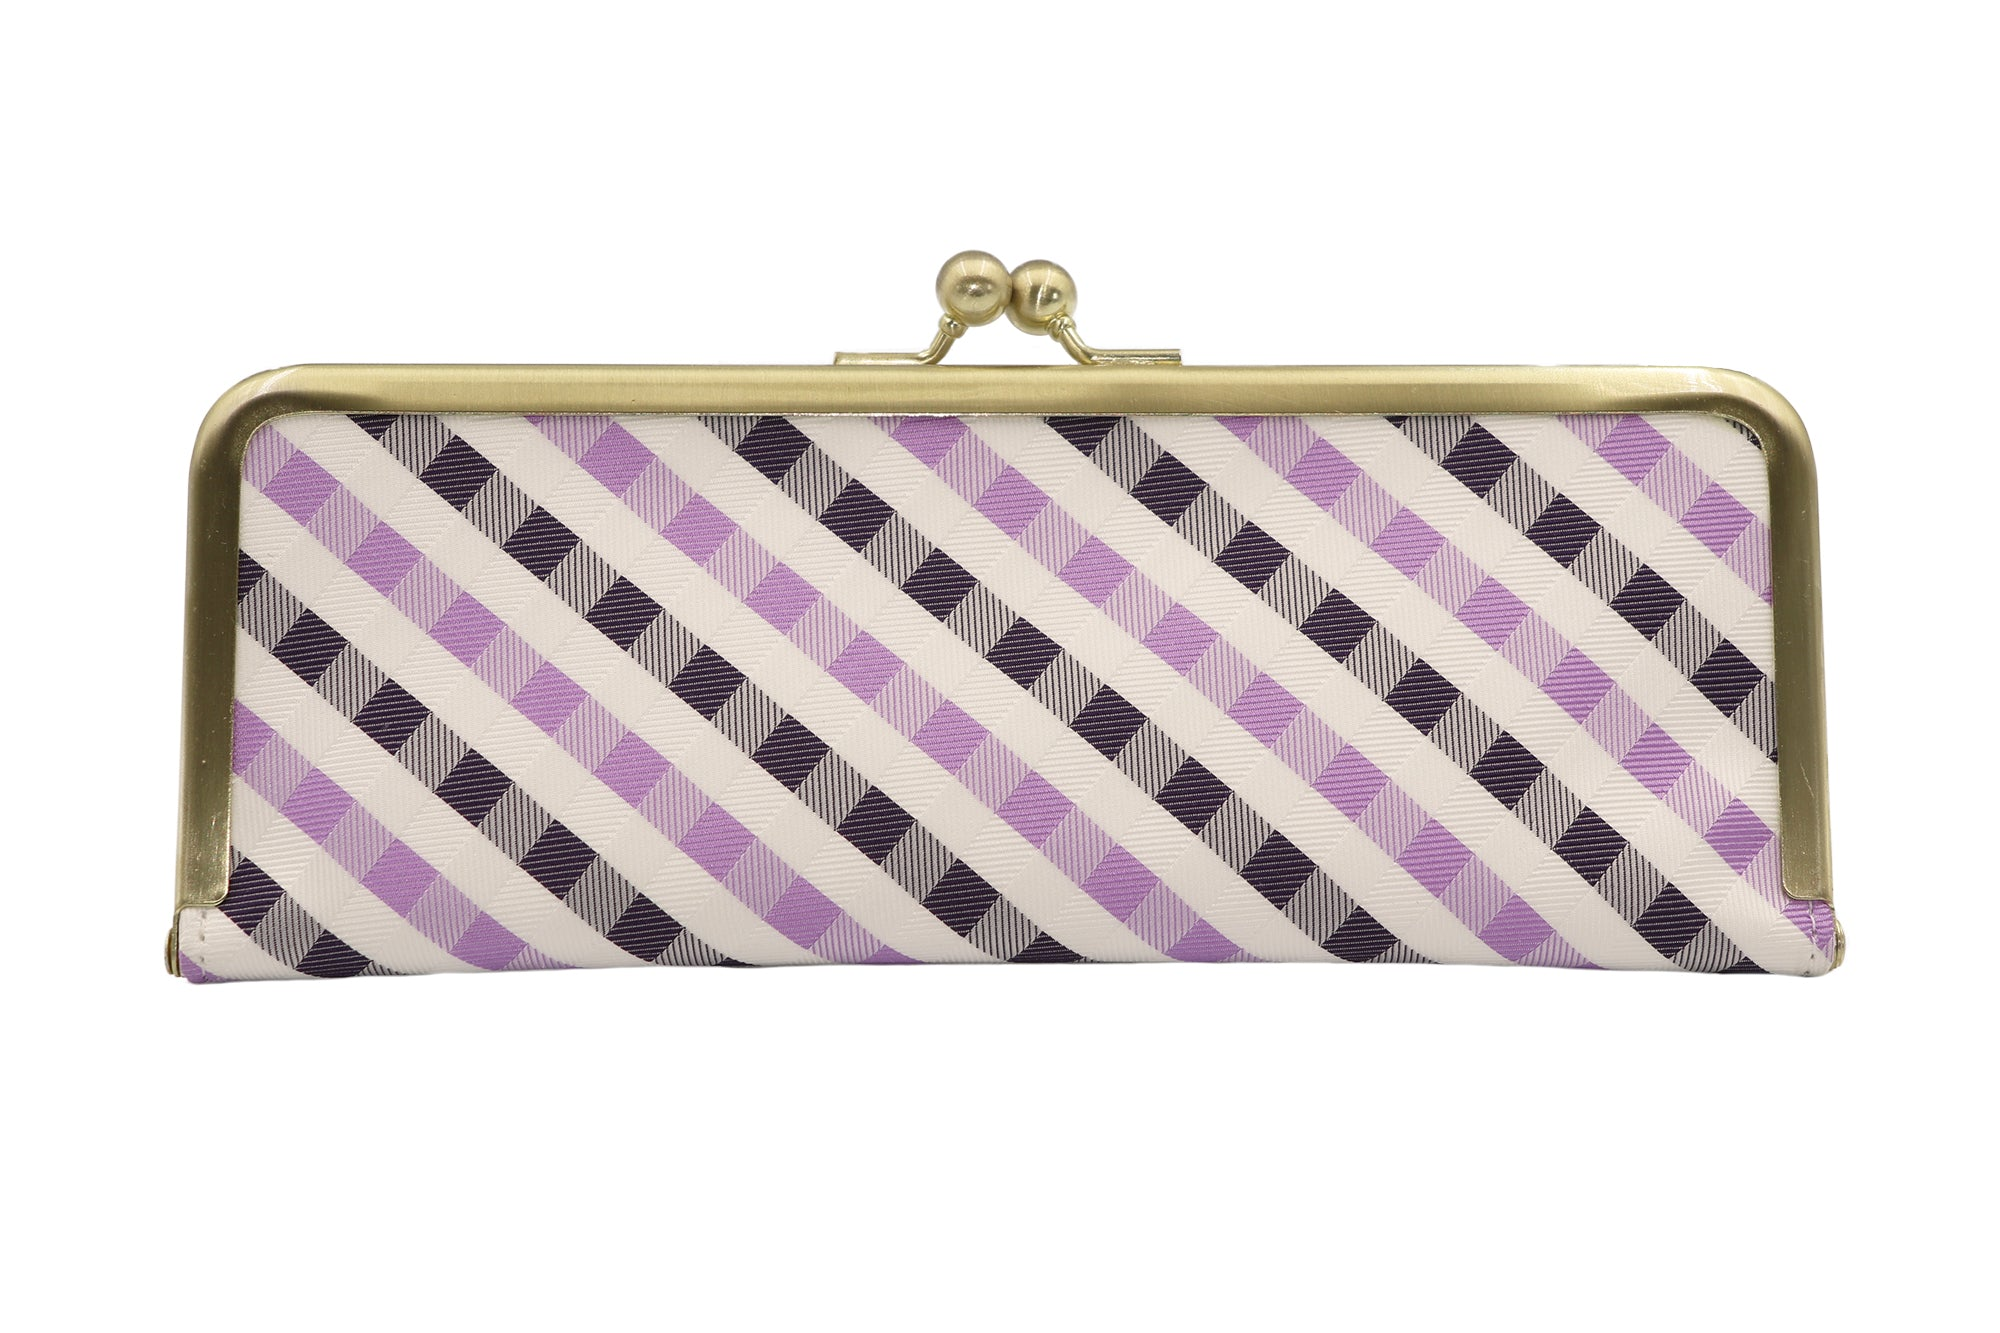 water-repellent Nishijin silk jacquard, antibacterial and antiviral clasp-type mask case, lattice design, purple, made in Japan